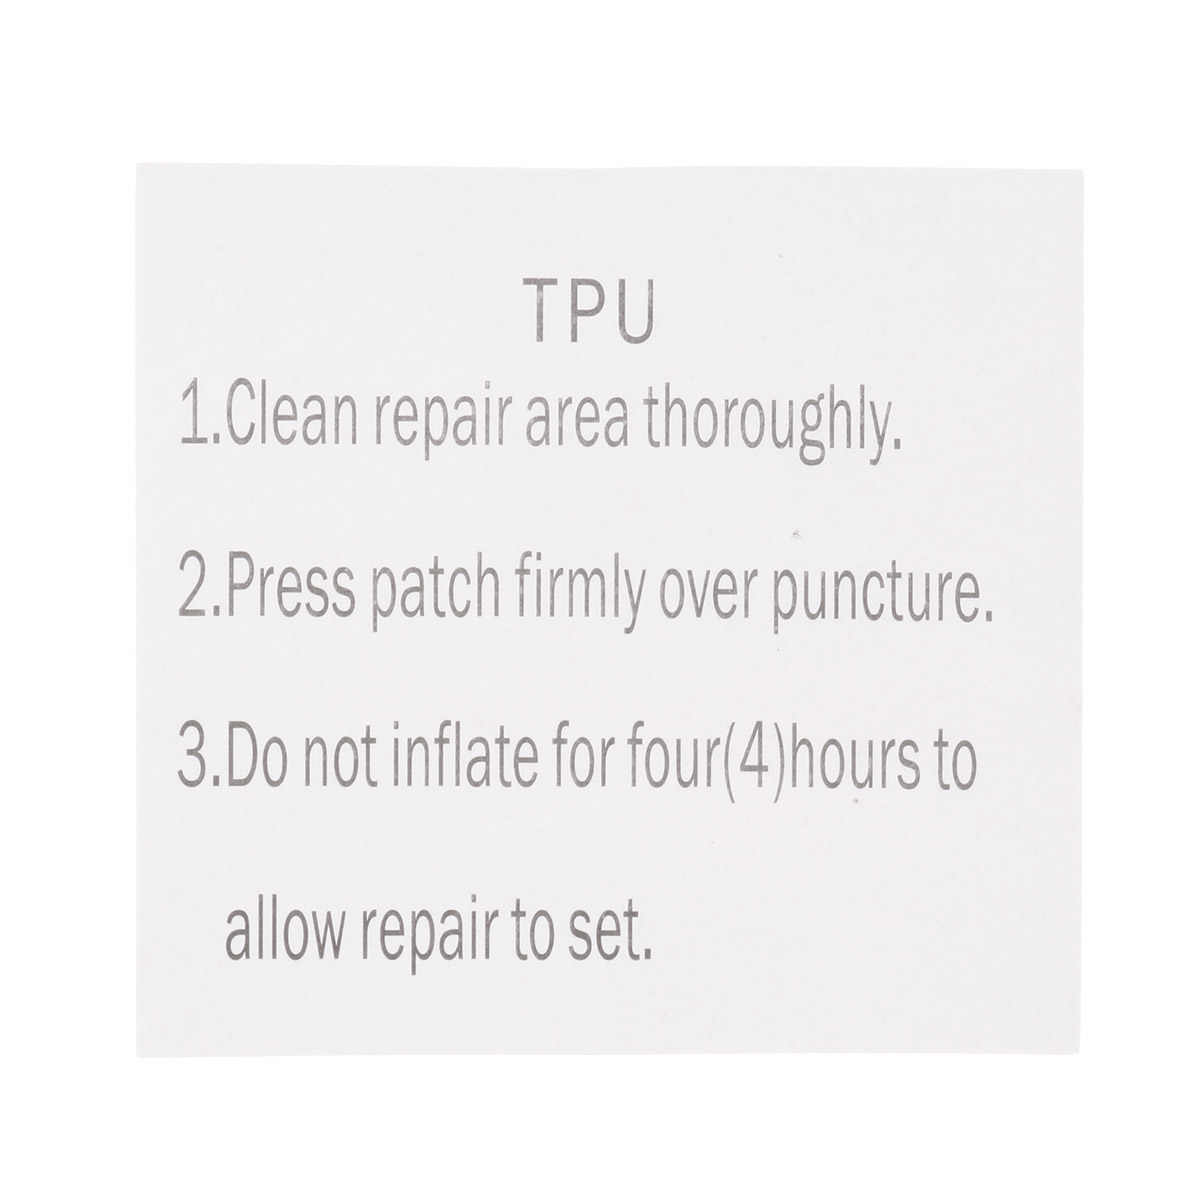 10Pcs Tenacious Tape Clear Flex Patches TPU Tent Tape Outdoor Gear Patch  for Vinyl and Fabric Repair